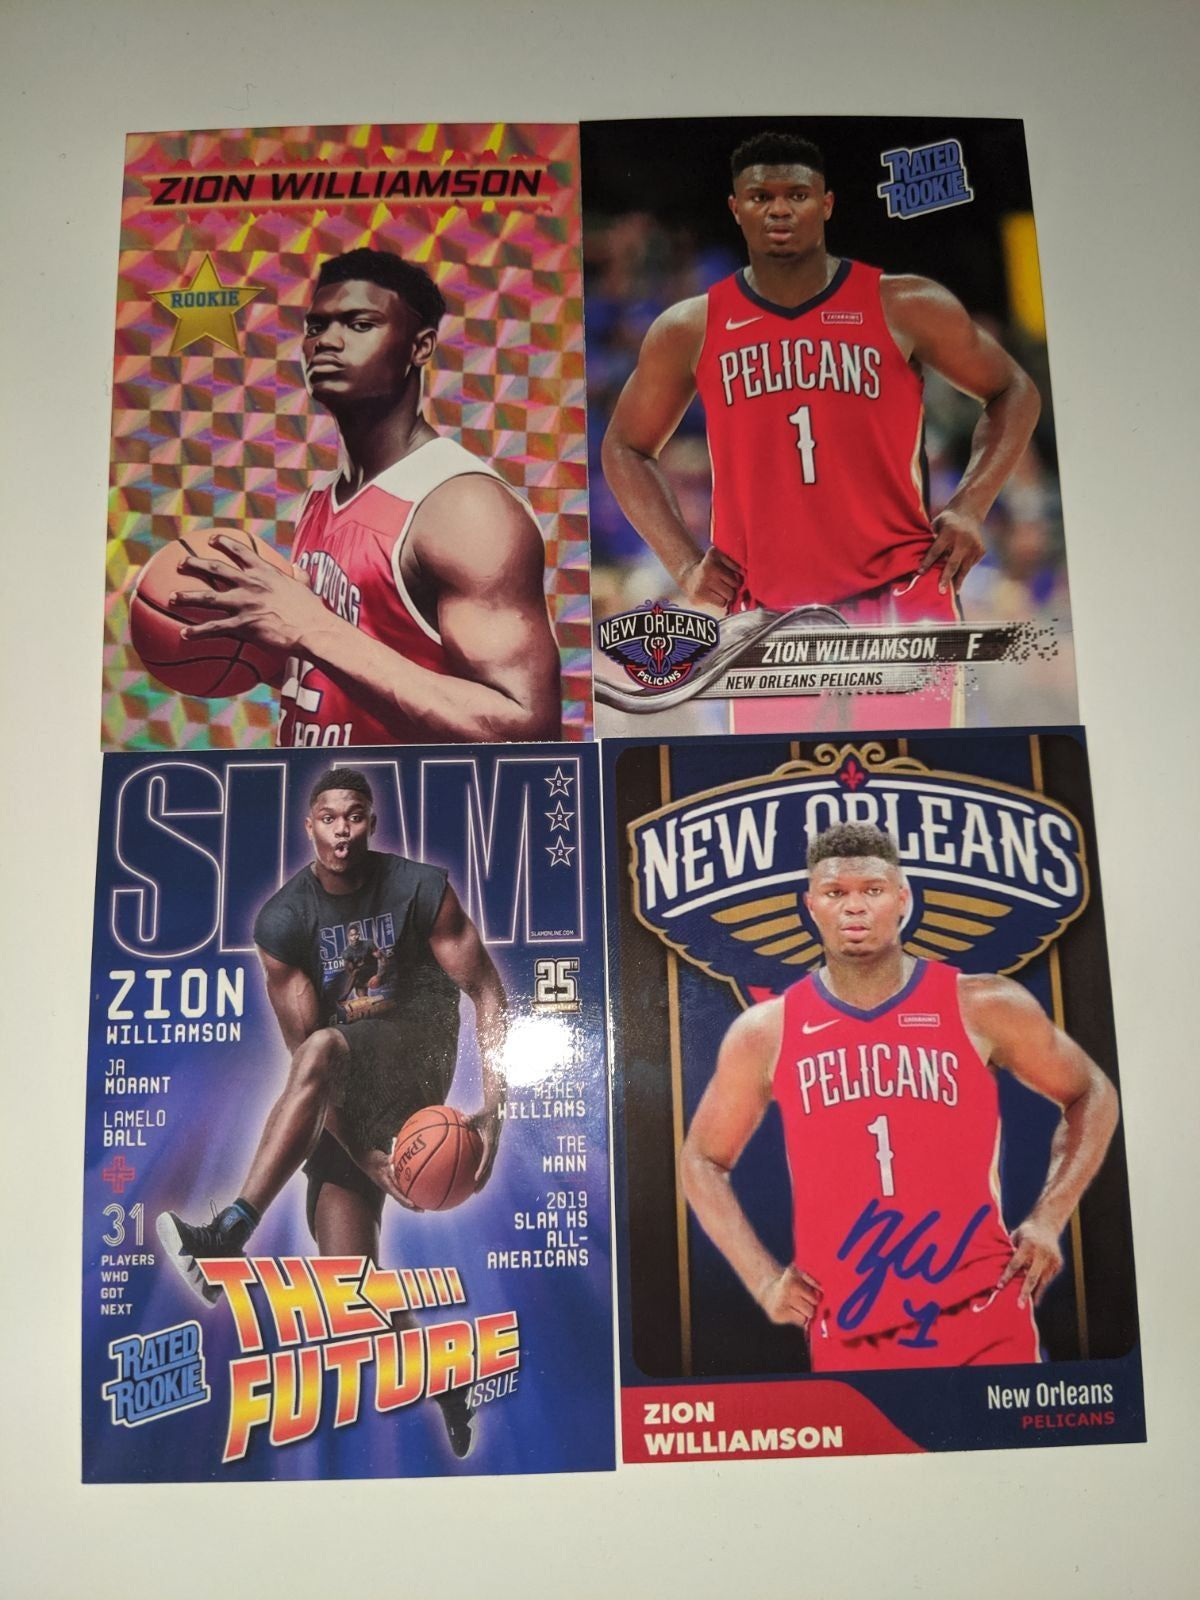 These Are Facsimile Autograph Cards Printed Autographs Not Authentic I Have More Of These Cards That Are Shown In Pic In Volume Plus M Nba Sports Nba Nfl